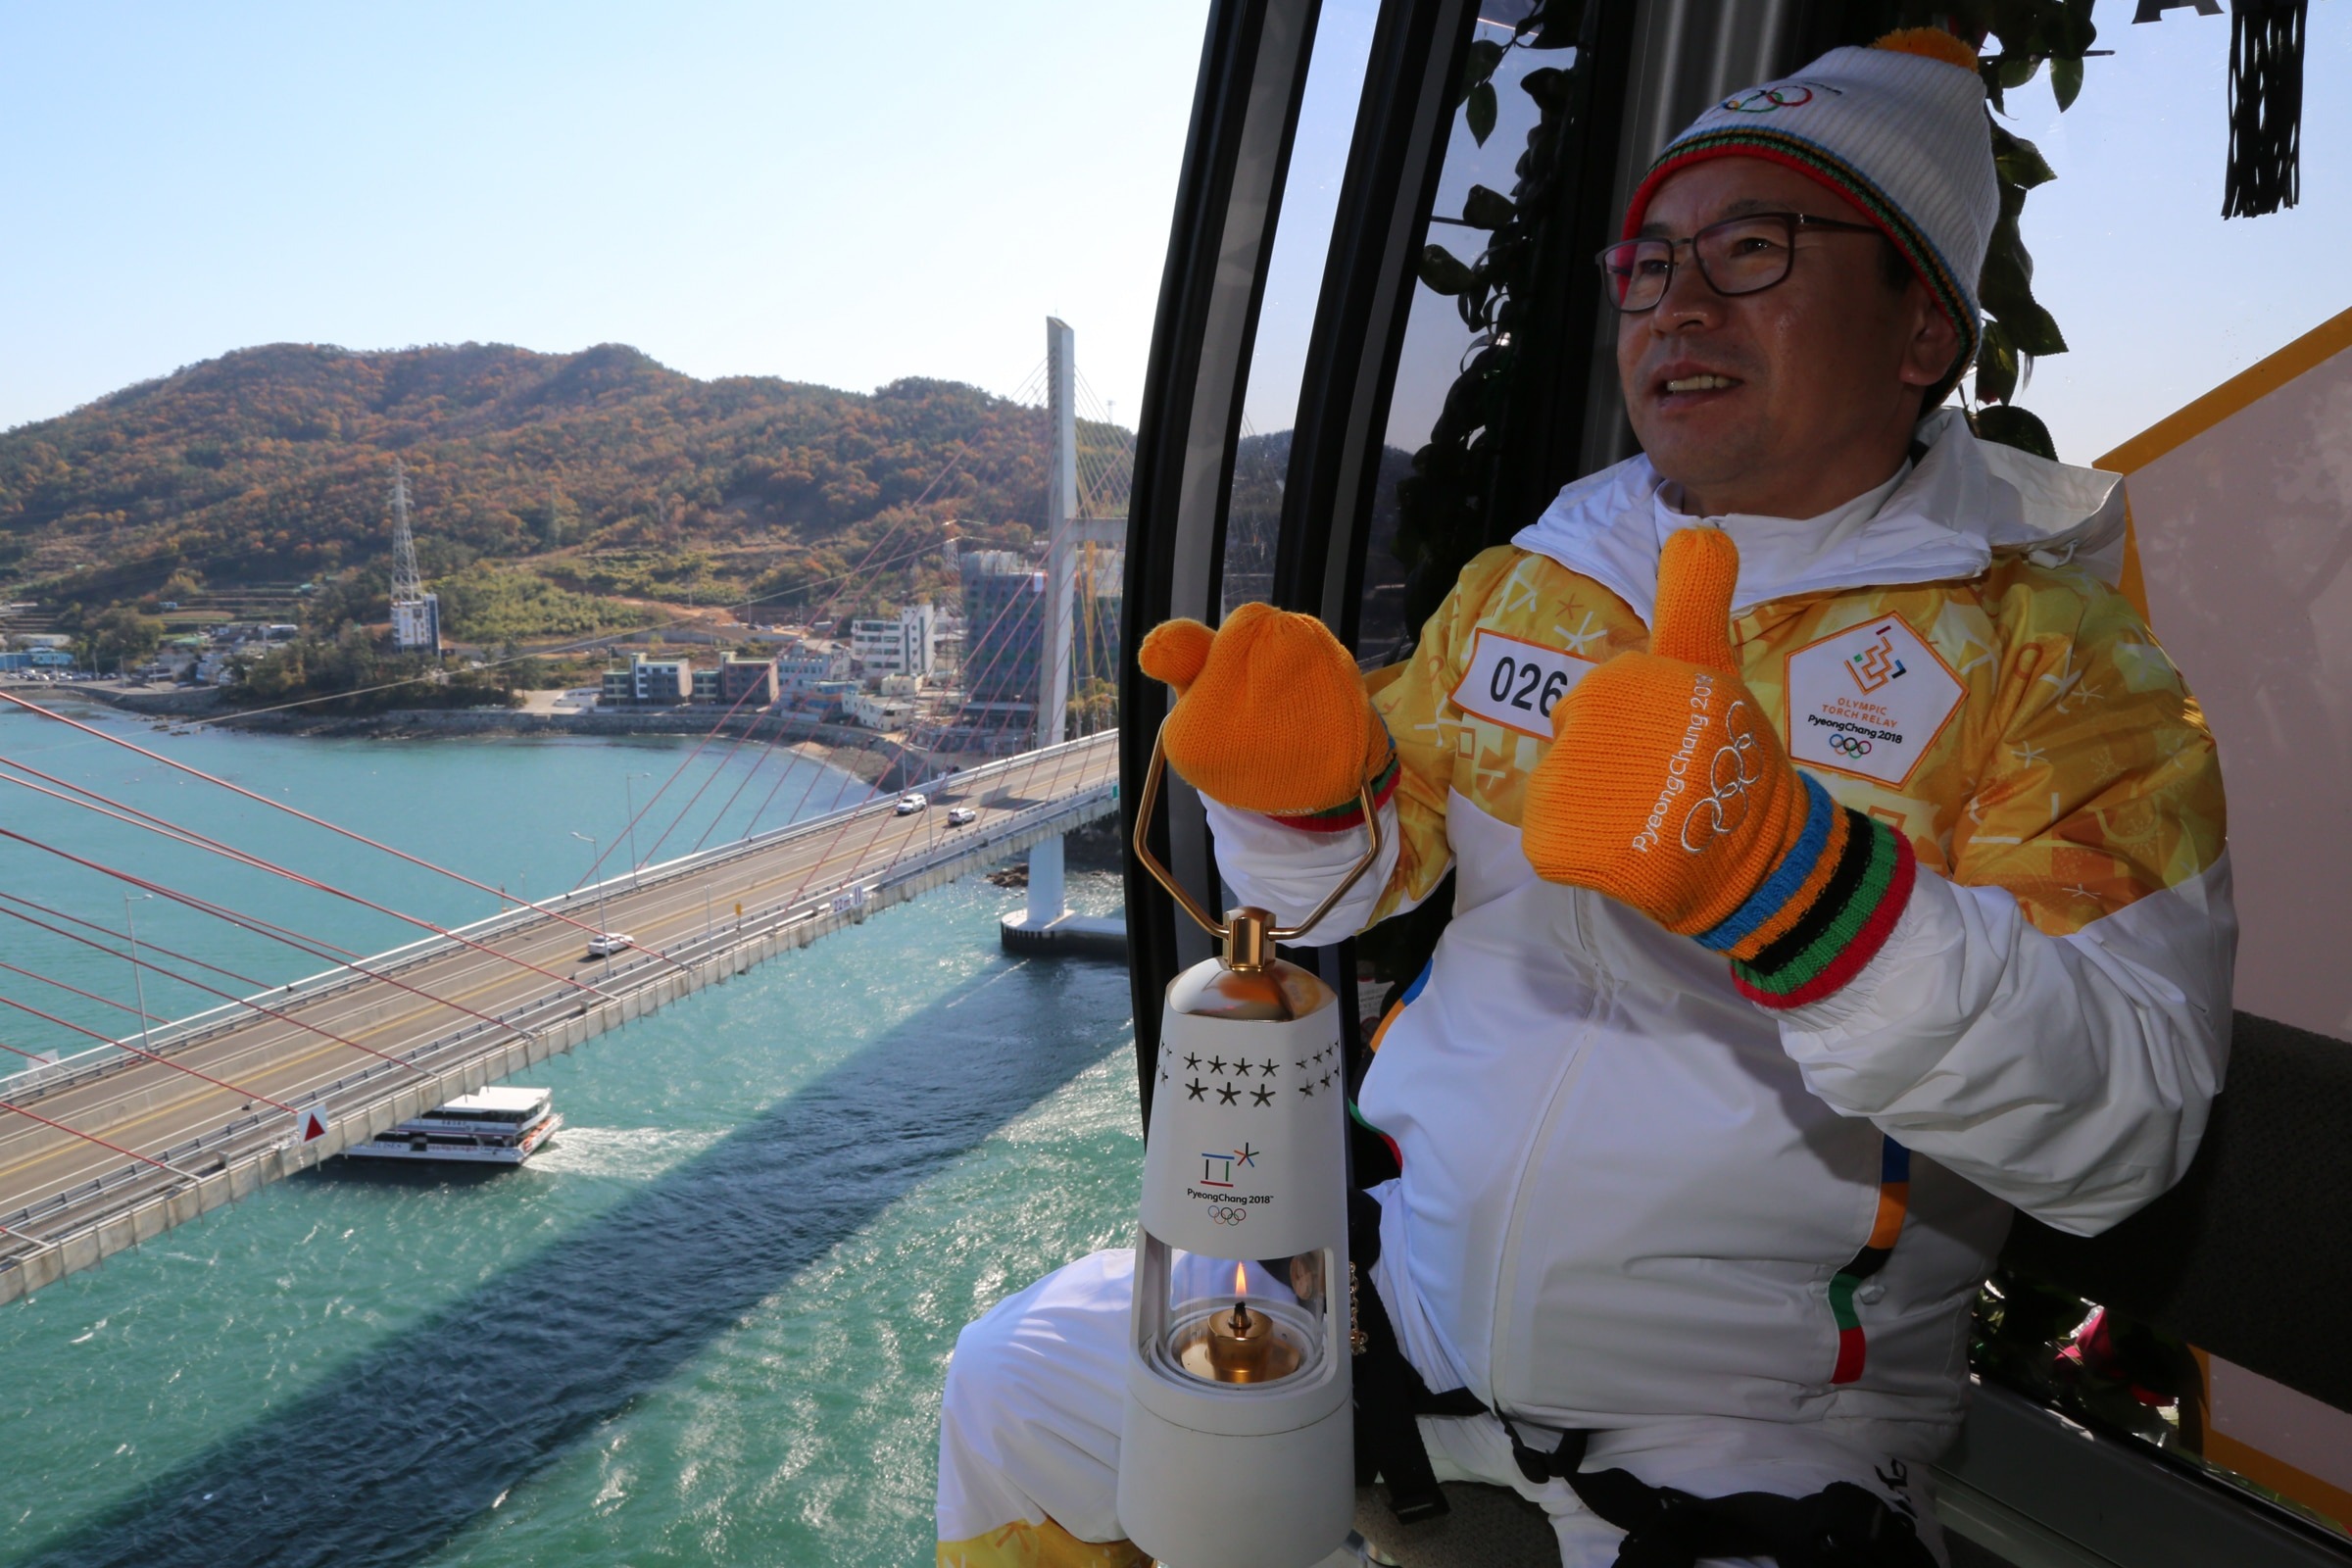 PyeongChang 2018 Olympic Torch Relay - Day 19